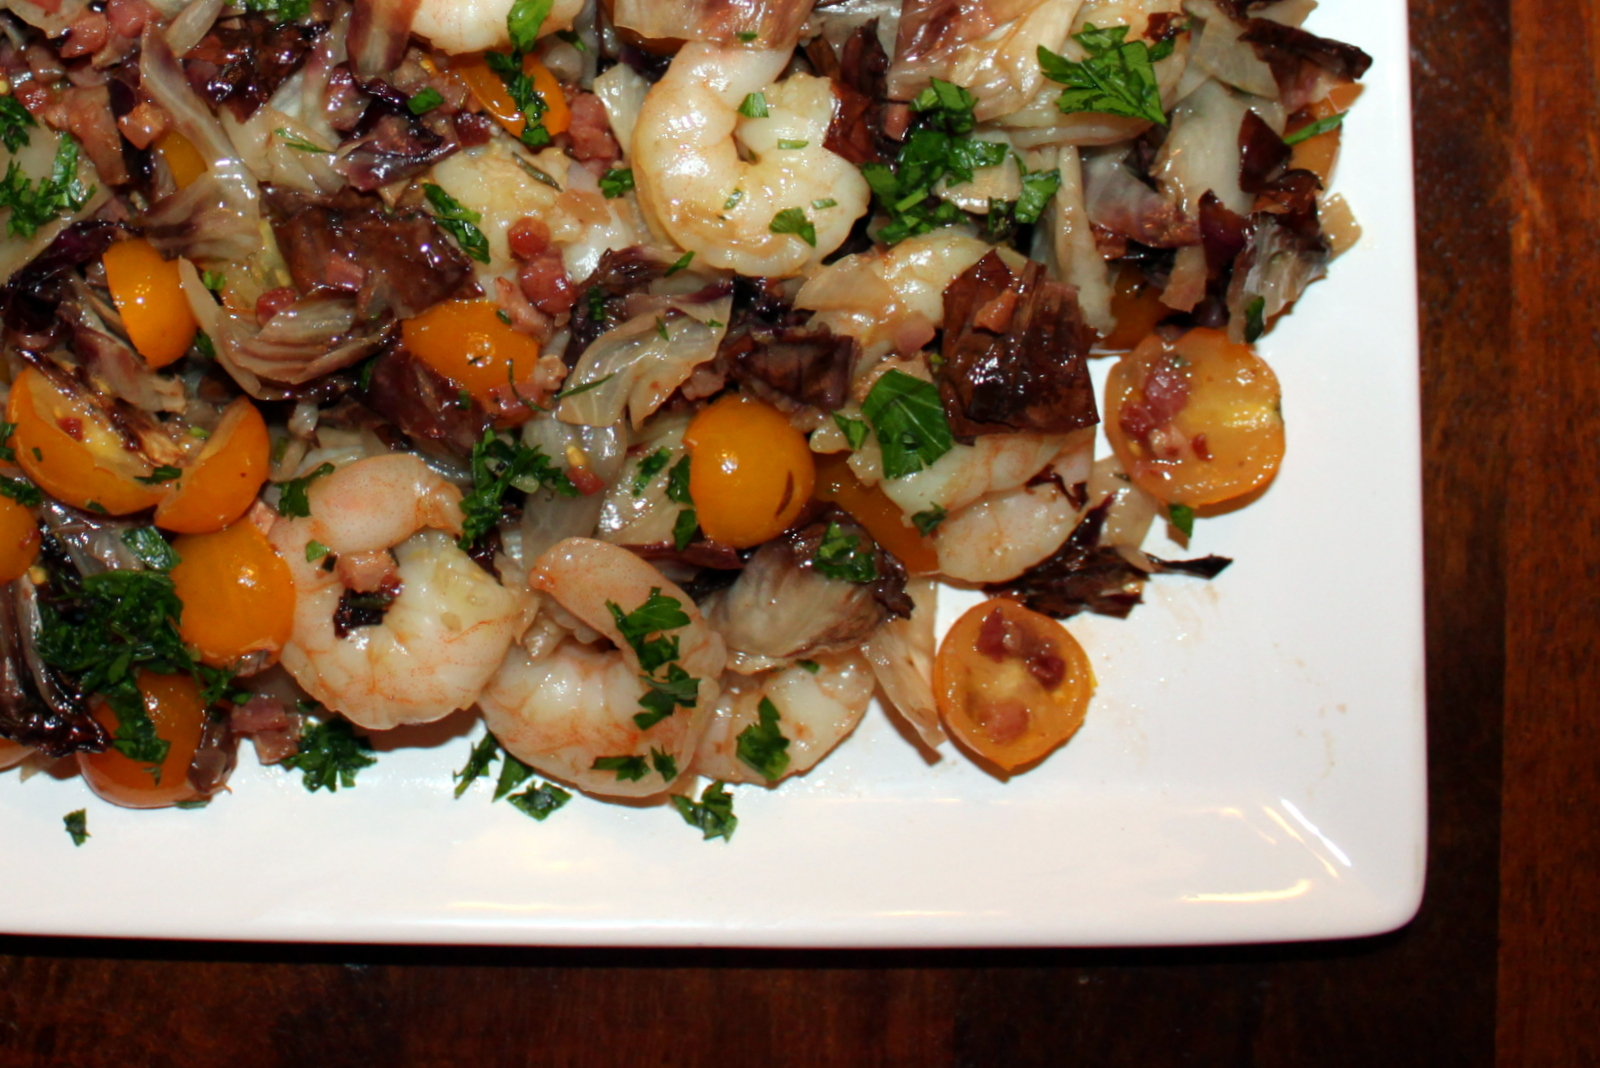 Roasted Radicchio and Shrimp with Warm Bacon Vinaigrette